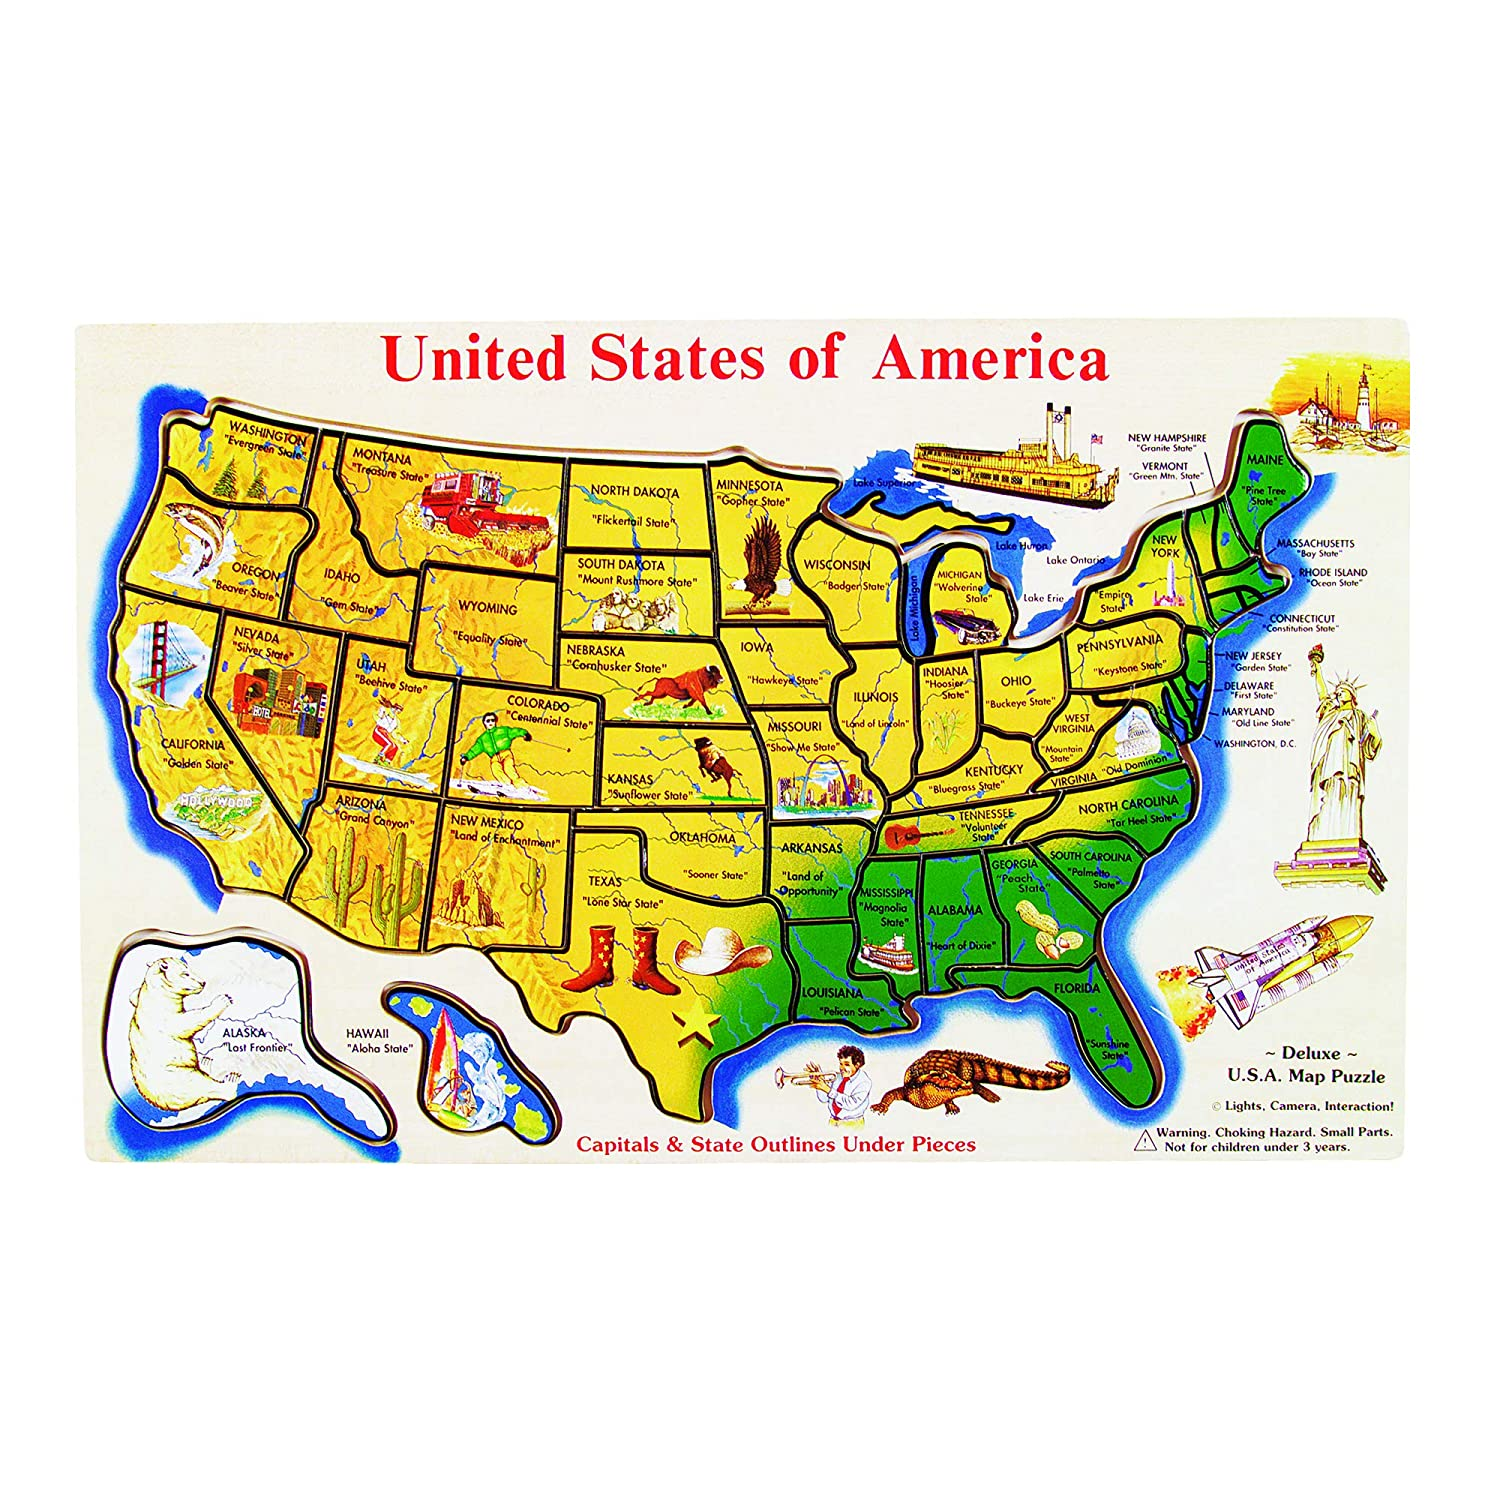 Melissa & Doug USA Map Wooden Puzzle (45 pcs) on print map of usa states, all map of usa states, show united states america map, show me on the united state map alaska, show the 50 states, love map of usa states, big map of usa states, show all states in usa, map showing states, travel map of usa states, view map of usa states, train map of usa states, outline map of usa states, united states map states, labeled map of 50 states, show us map, usa map with states, weather of usa states,